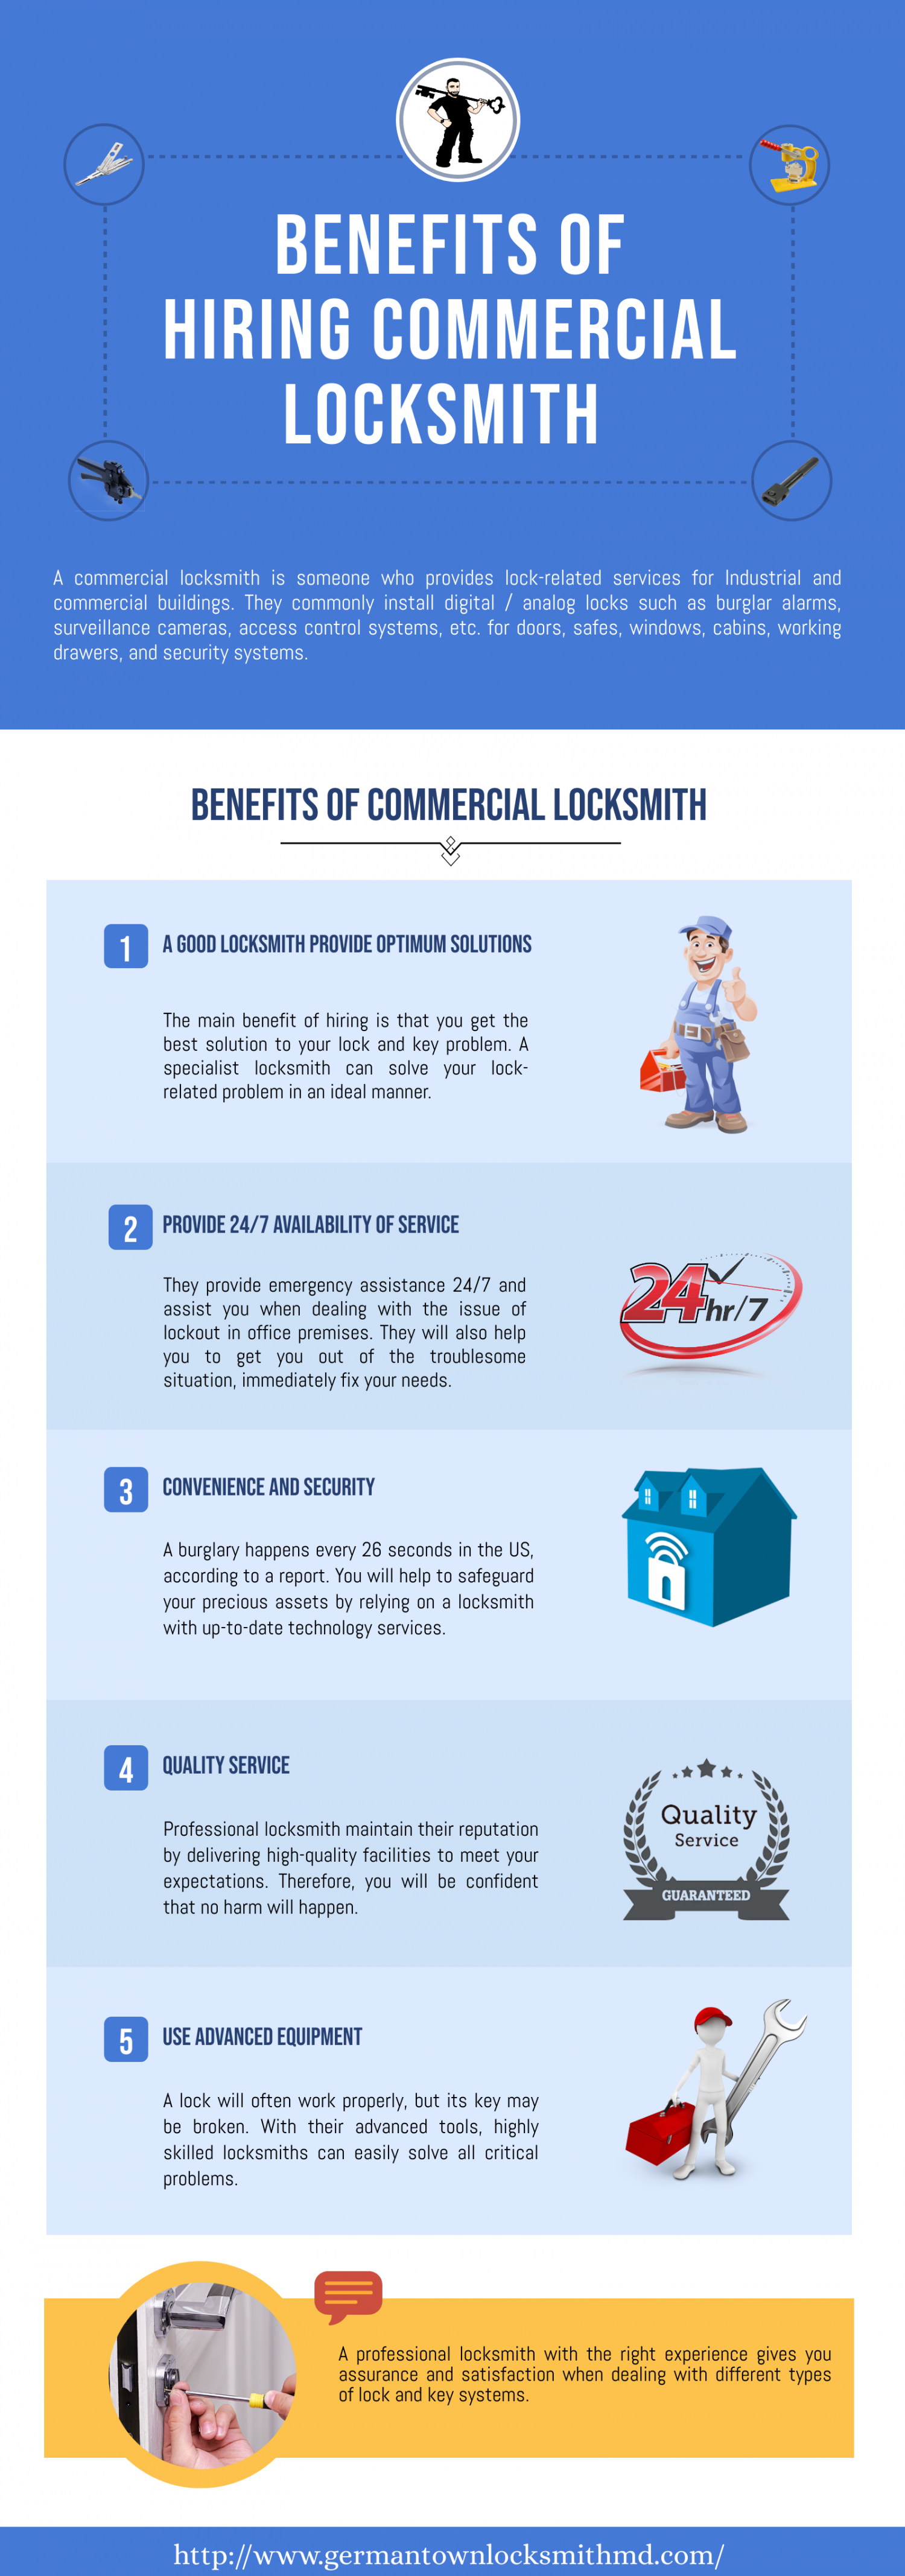 Benefits of Hiring Commercial Locksmith  Infographic